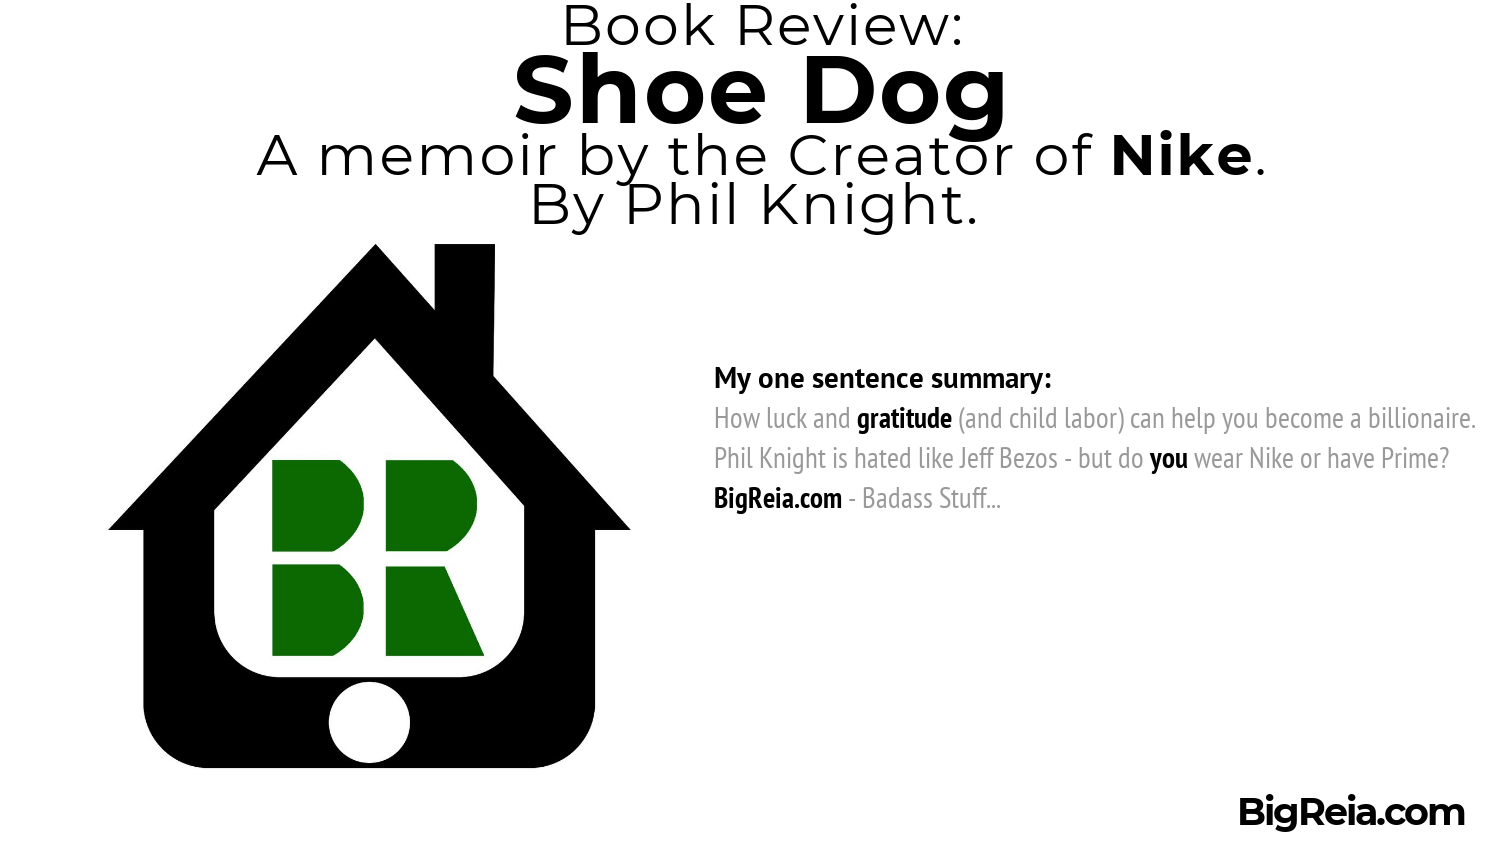 One sentence book review of Shoe Dog